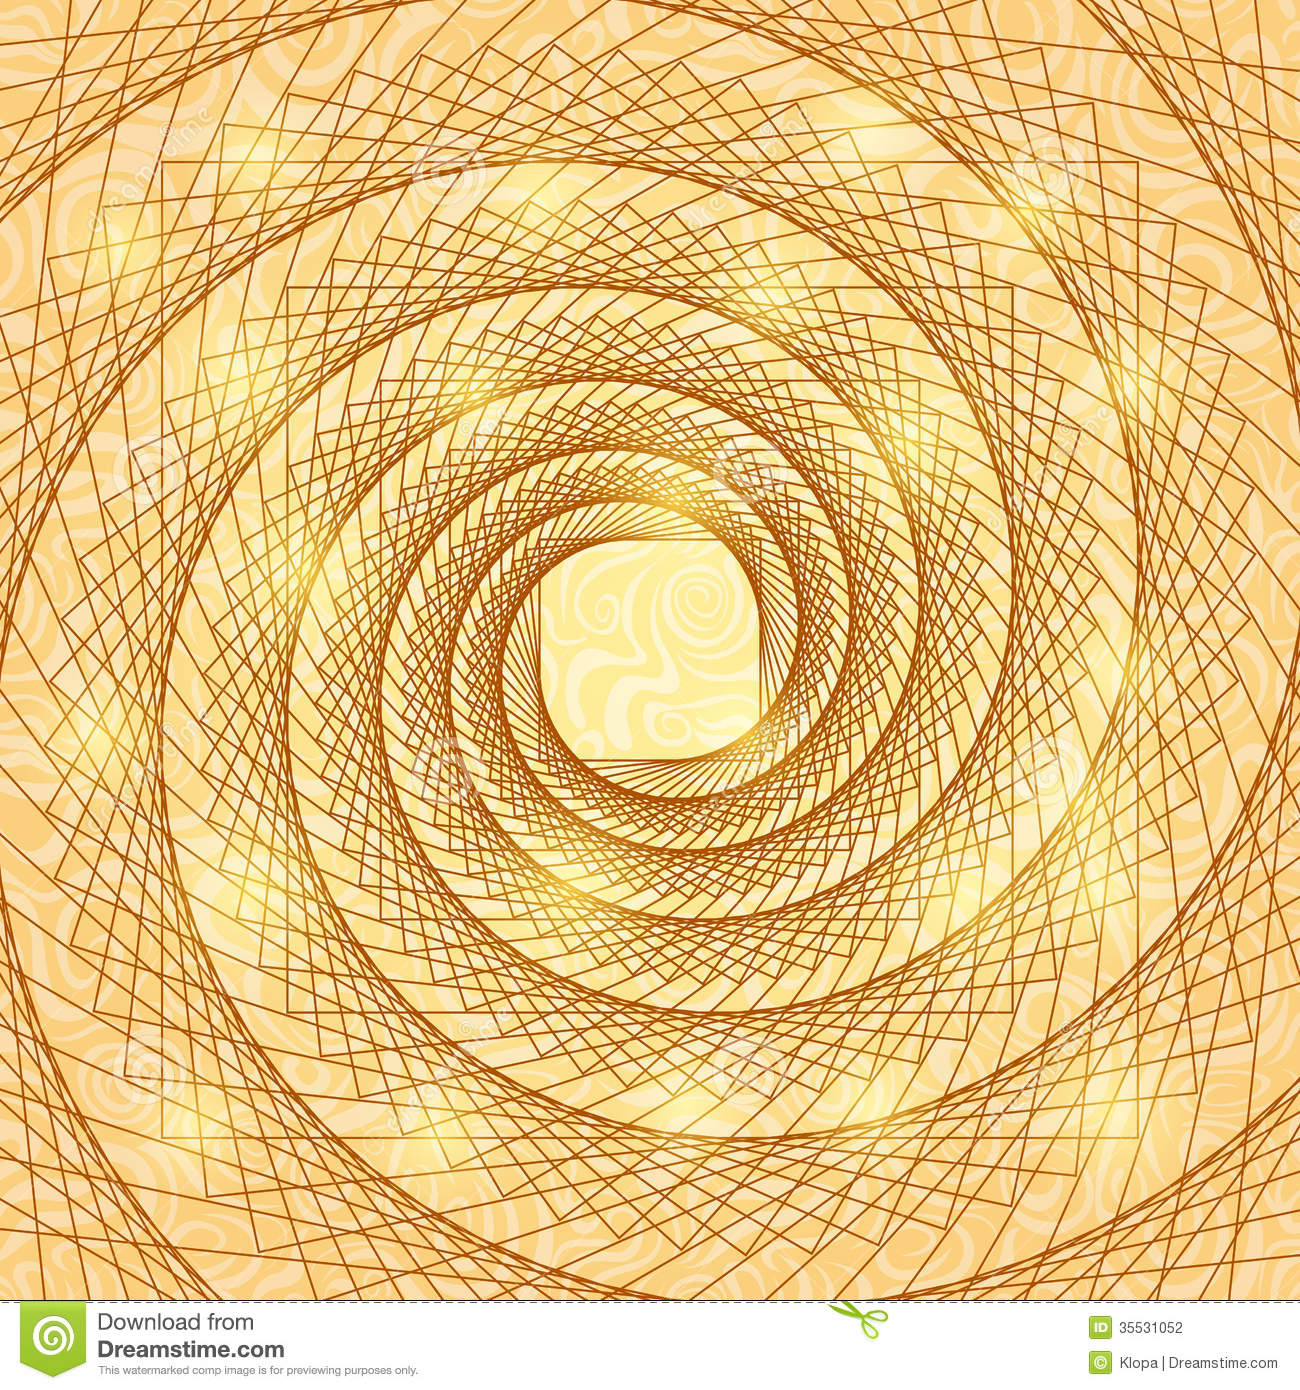 Shiny Gold Abstract Spiral Doodle Card Background Illustration on spiral doodle border